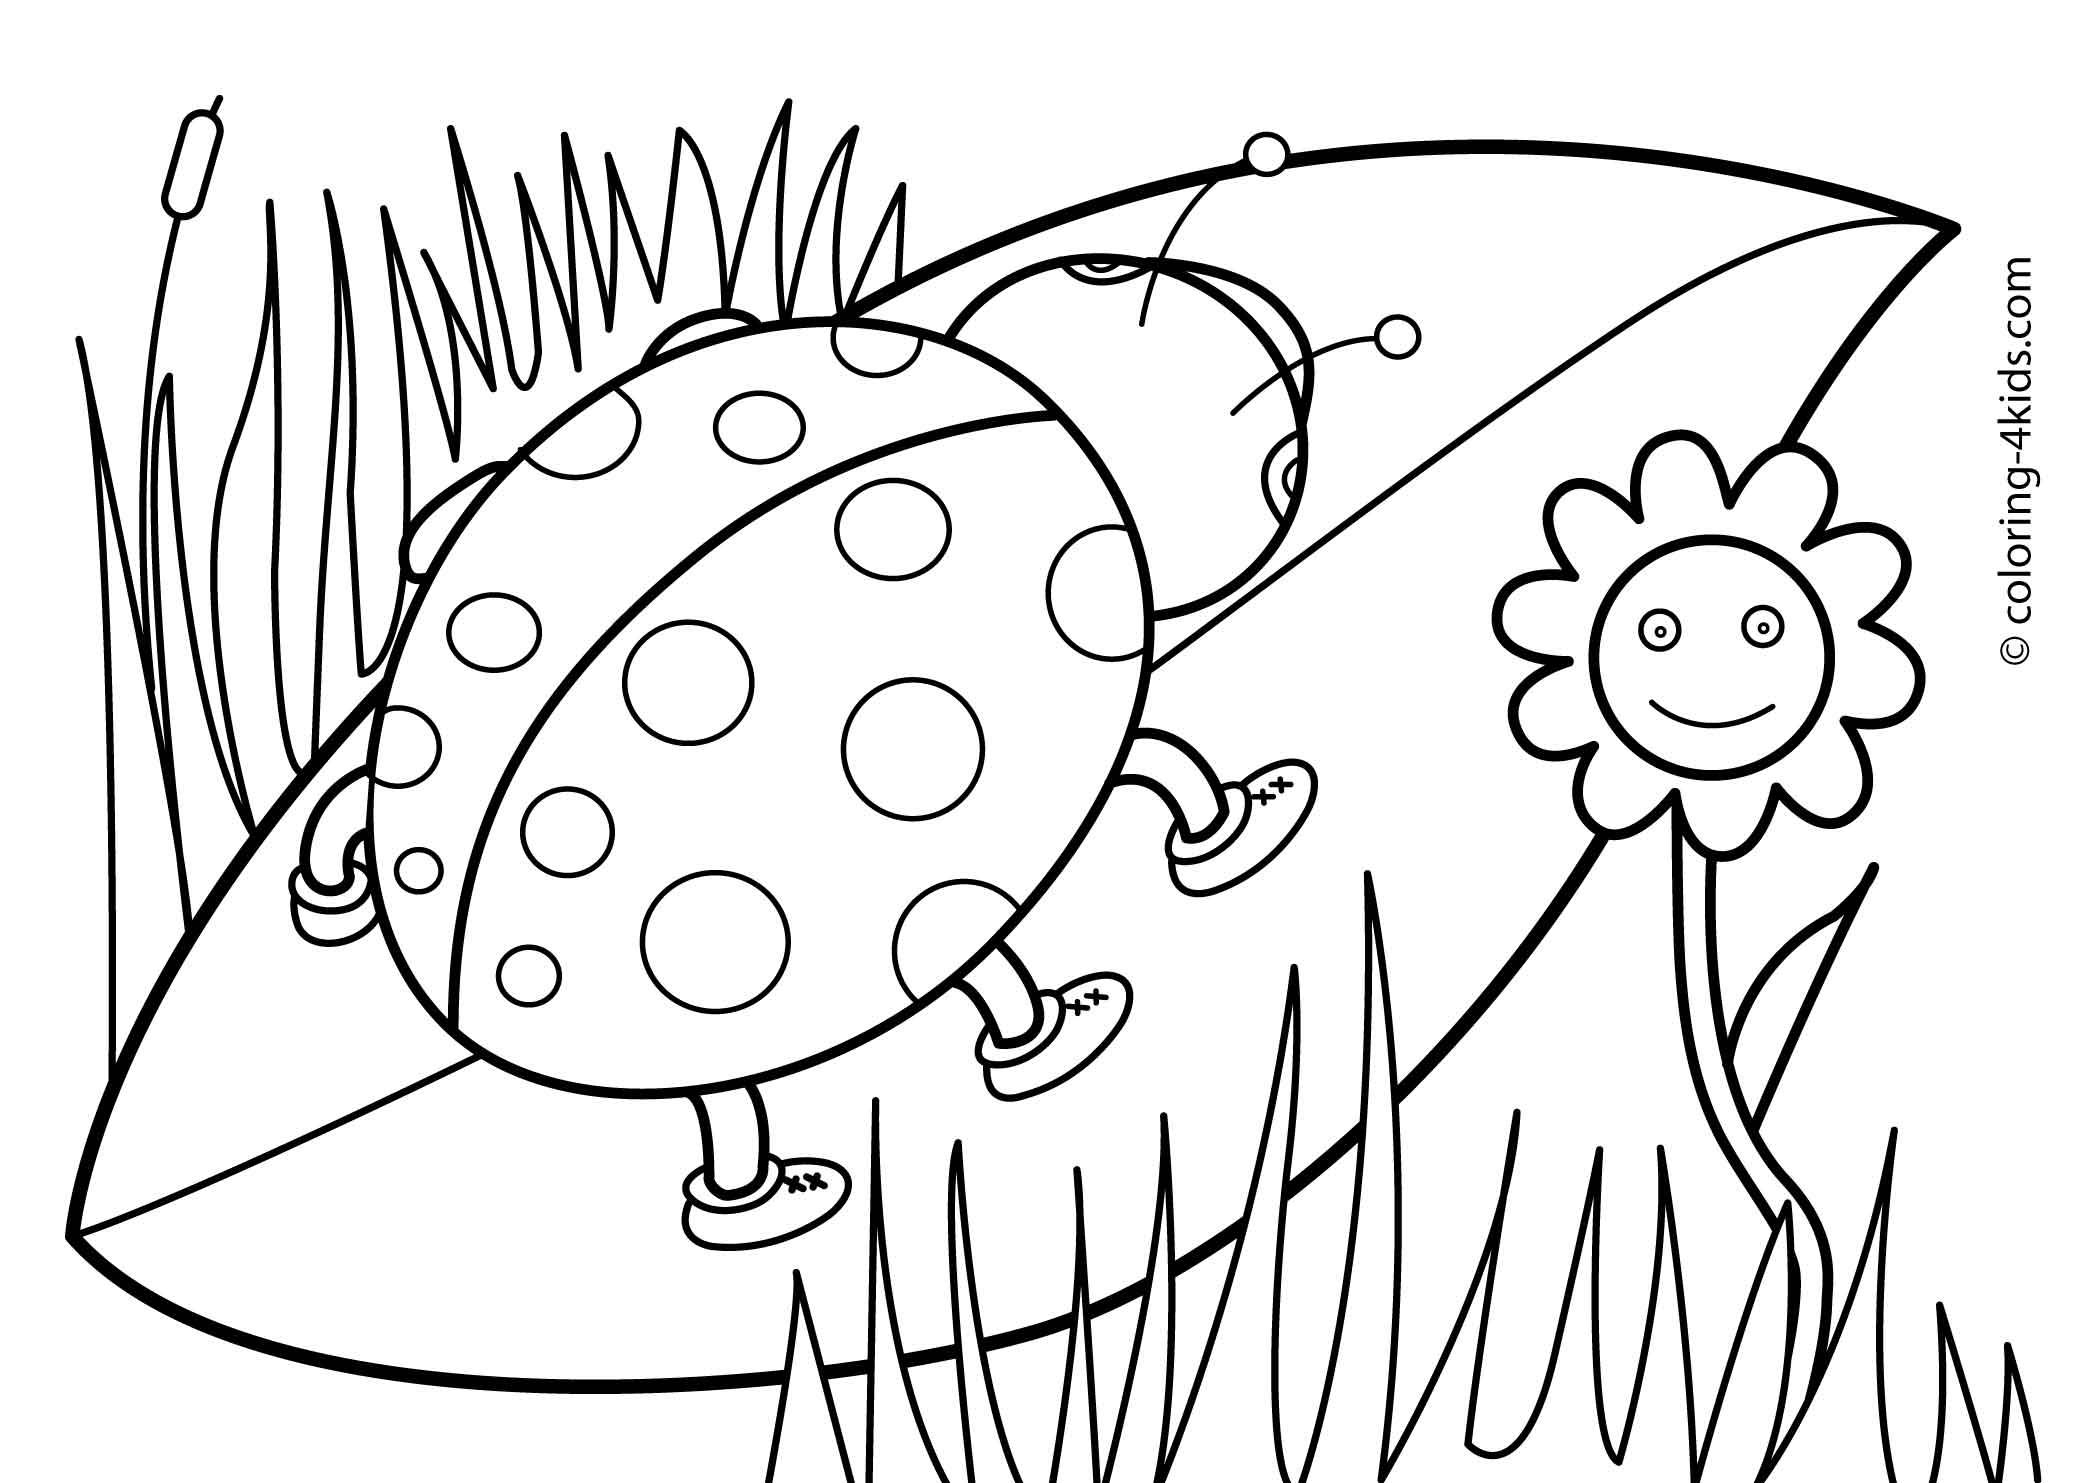 spring nature coloring pages happy nature in spring coloring page for kids seasons nature coloring pages spring